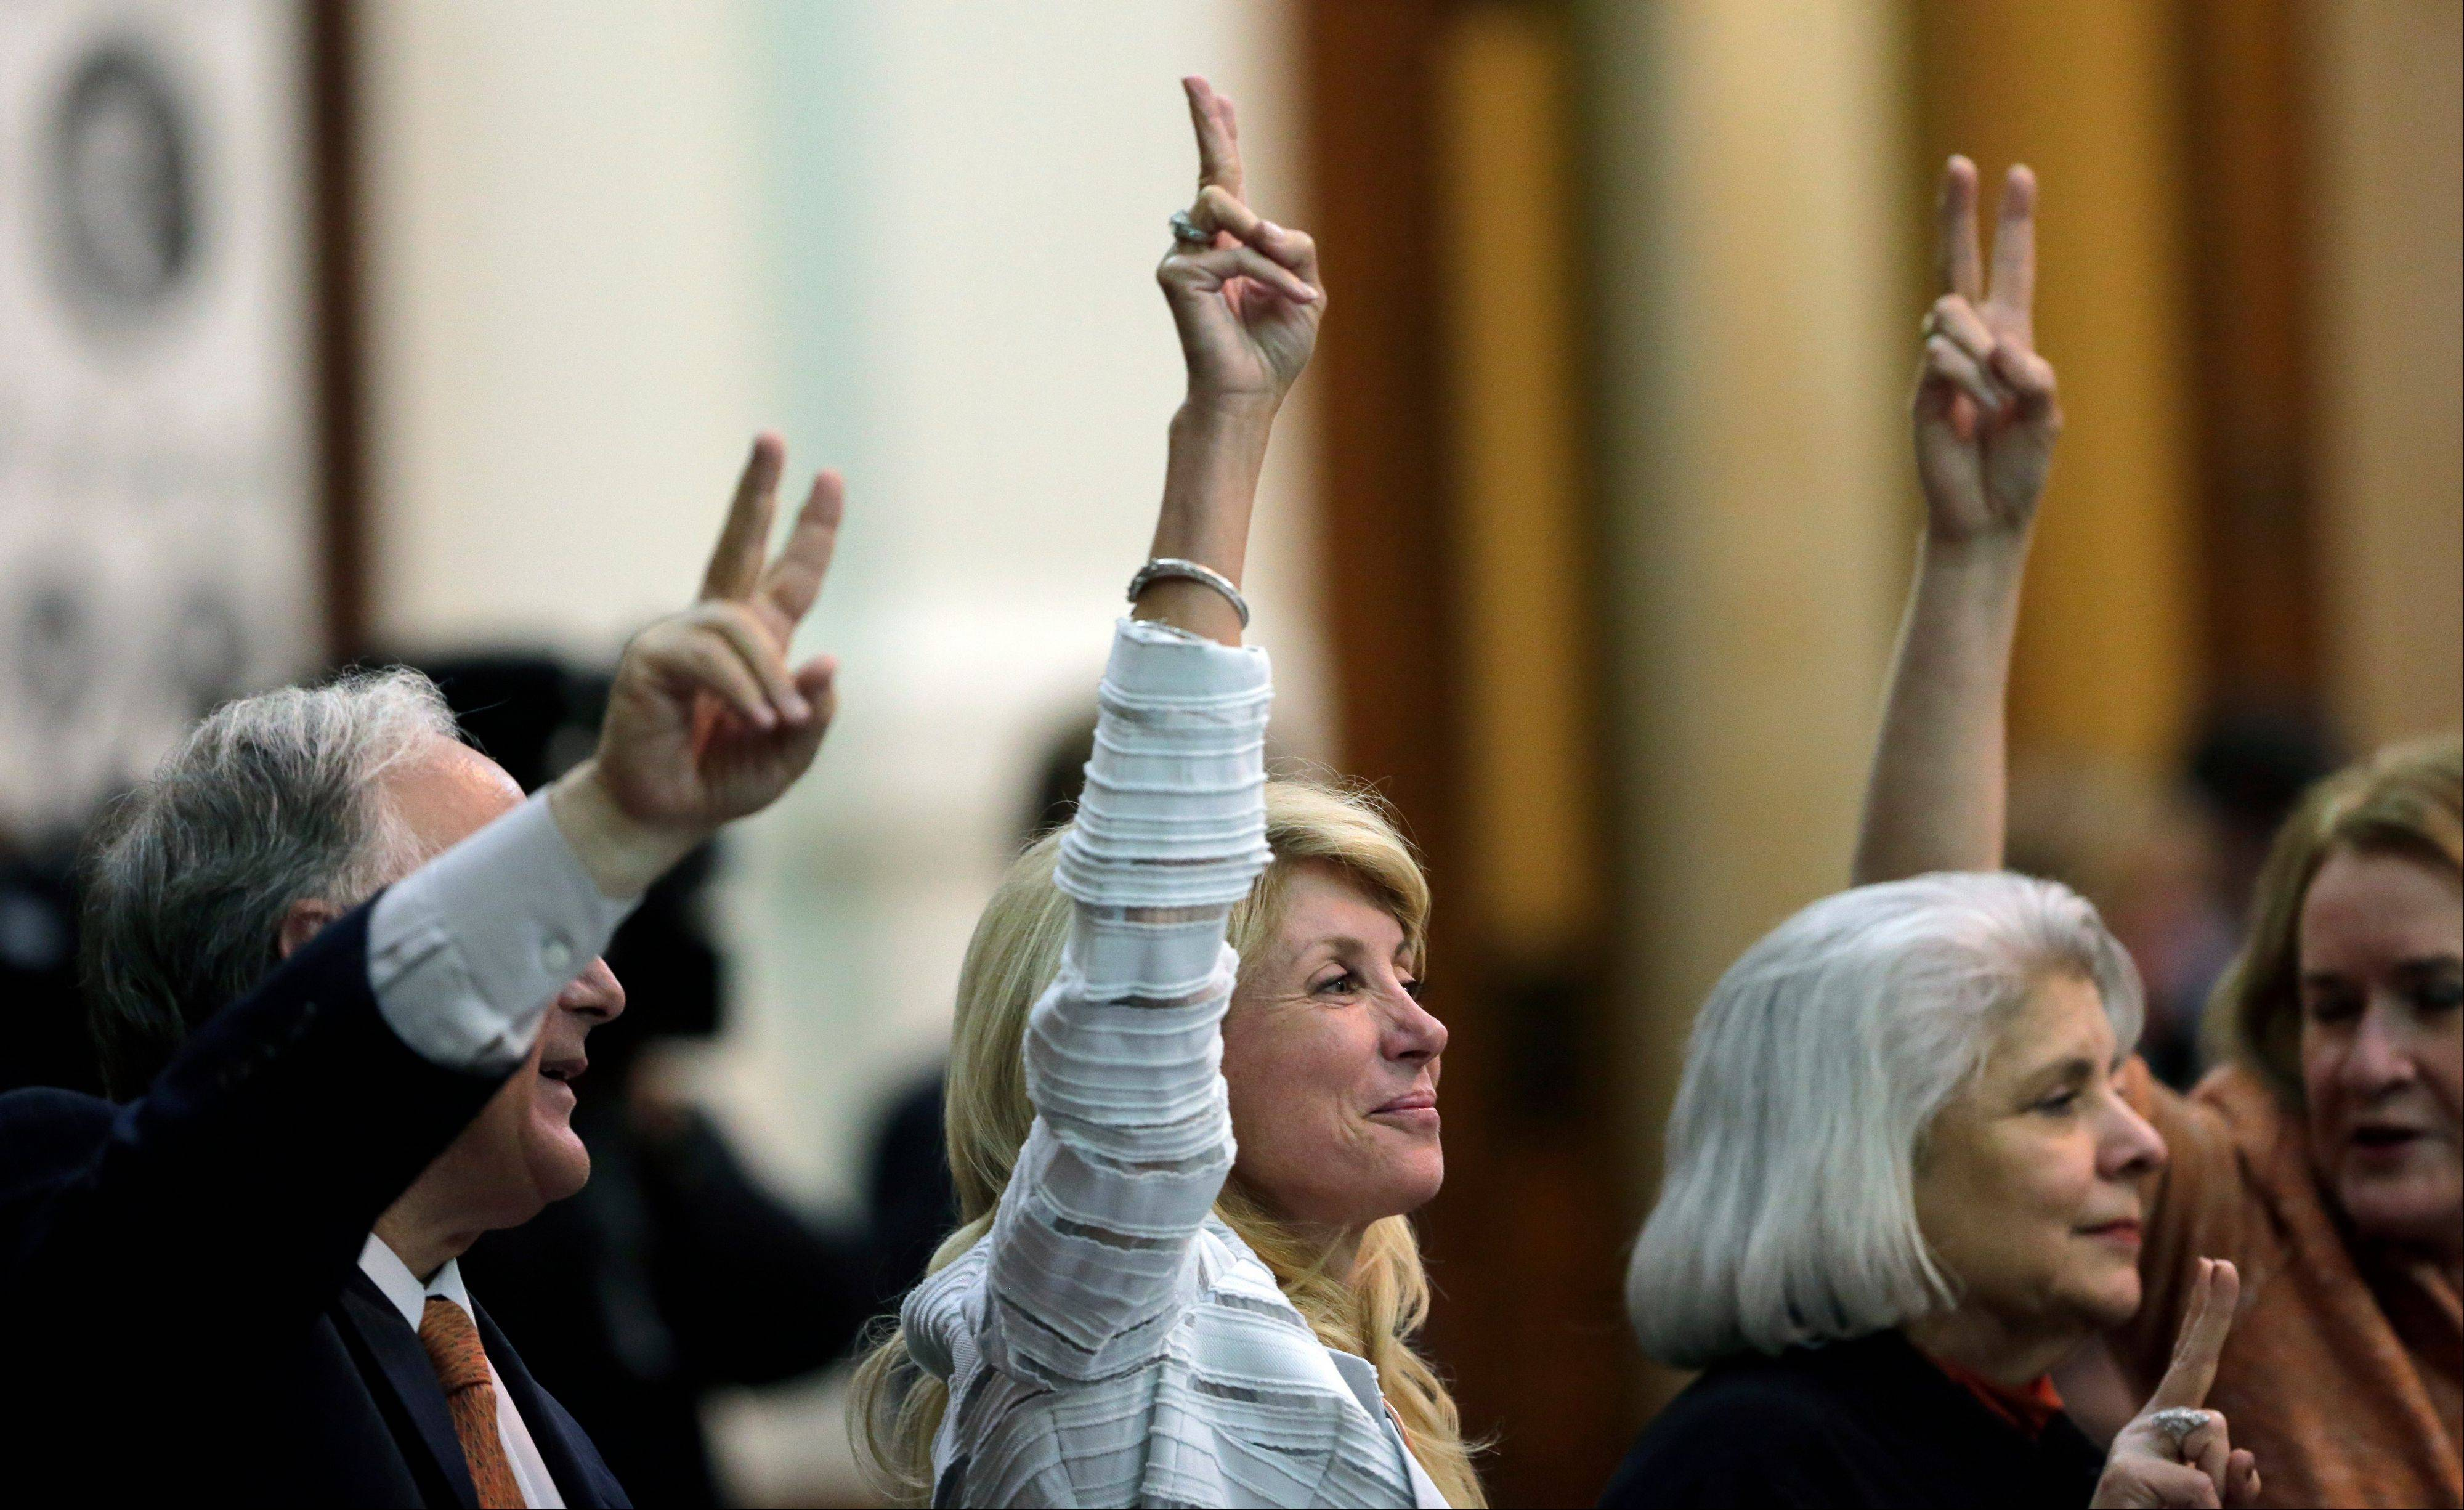 Sen. Wendy Davis, D-Fort Worth, center, holds up two fingers to signal a �No� vote as the session where she tried to filibuster an abortion bill draws to a close in Austin, Texas. Hundreds of abortion rights activists ensured that the first special legislative session descended into chaos. Now, Texas Gov. Rick Perry has convened a second one and urged abortion opponents to respond with mobilizations of their own.